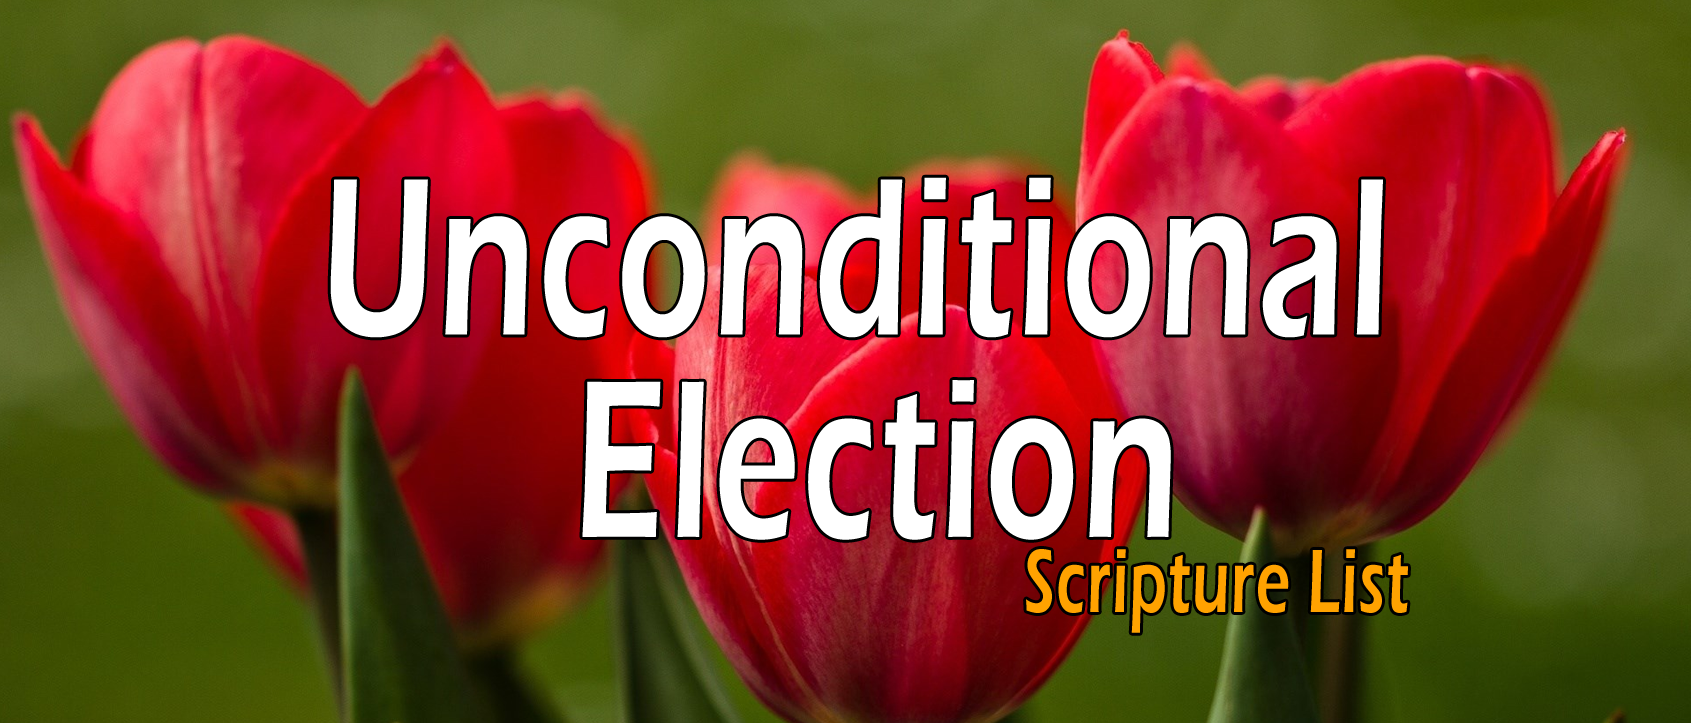 Unconditional Election, Sovereign Grace - Scripture List